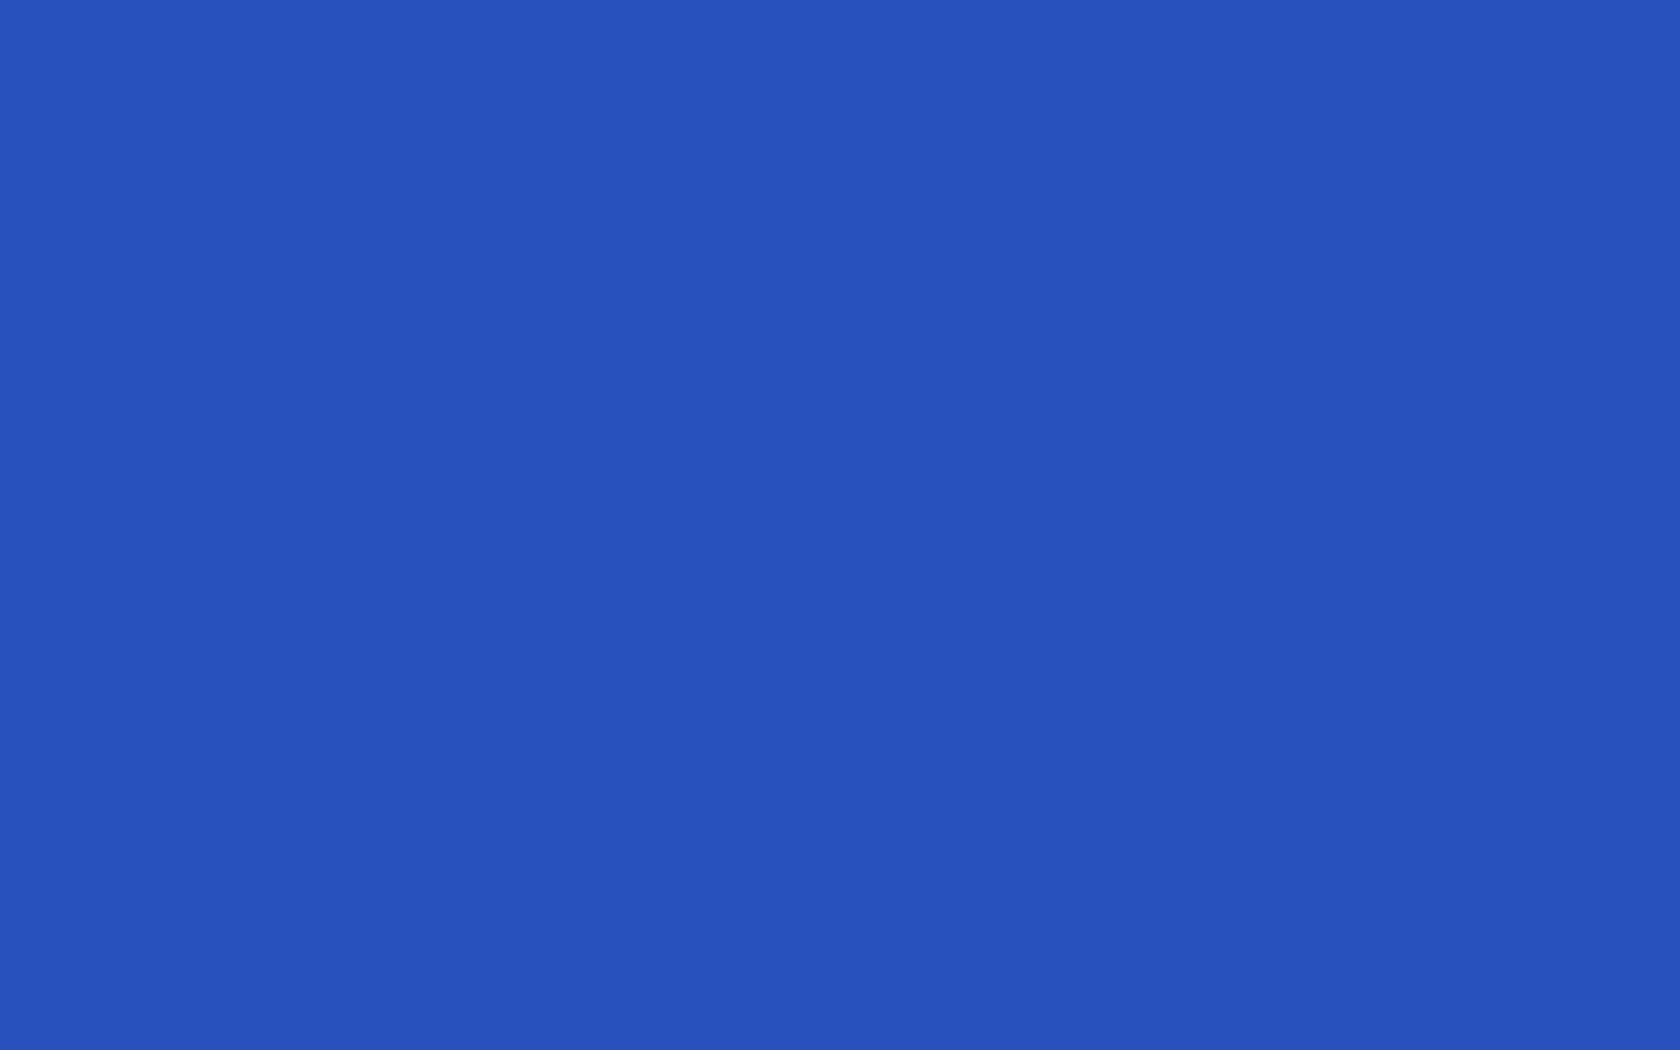 1680x1050 Cerulean Blue Solid Color Background